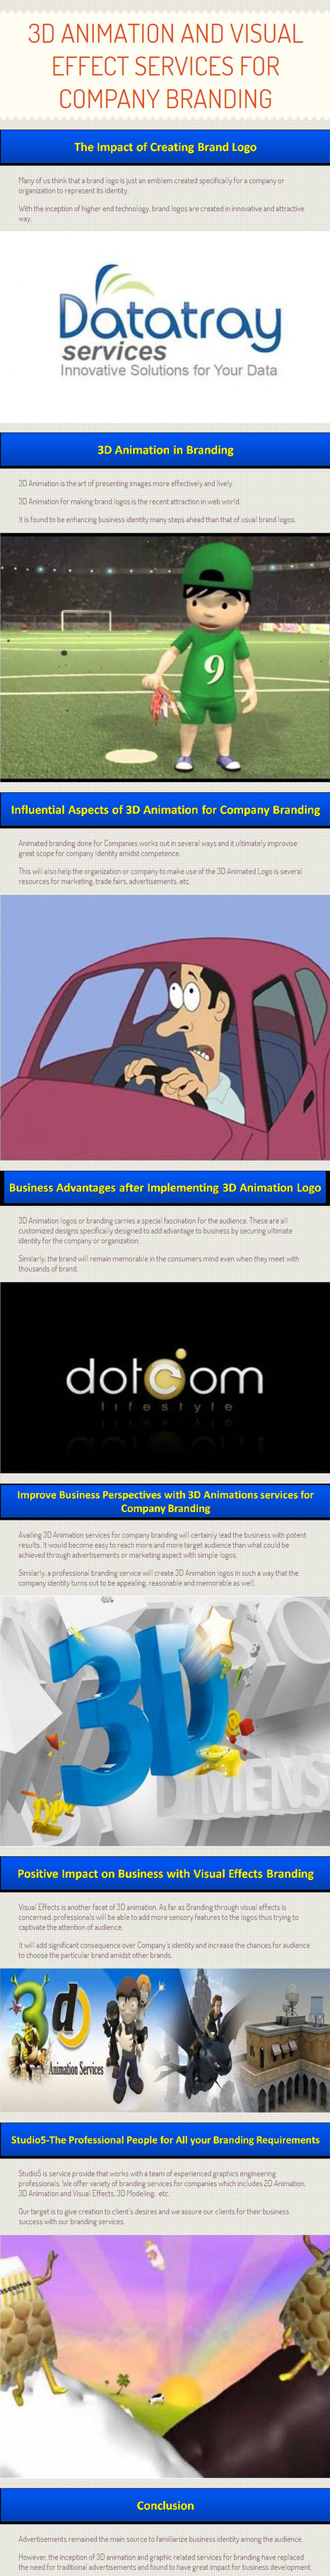 3D Animation and Visual Effect Services for Company Branding by www.thestudio5.com | 3D Animation Services | Scoop.it